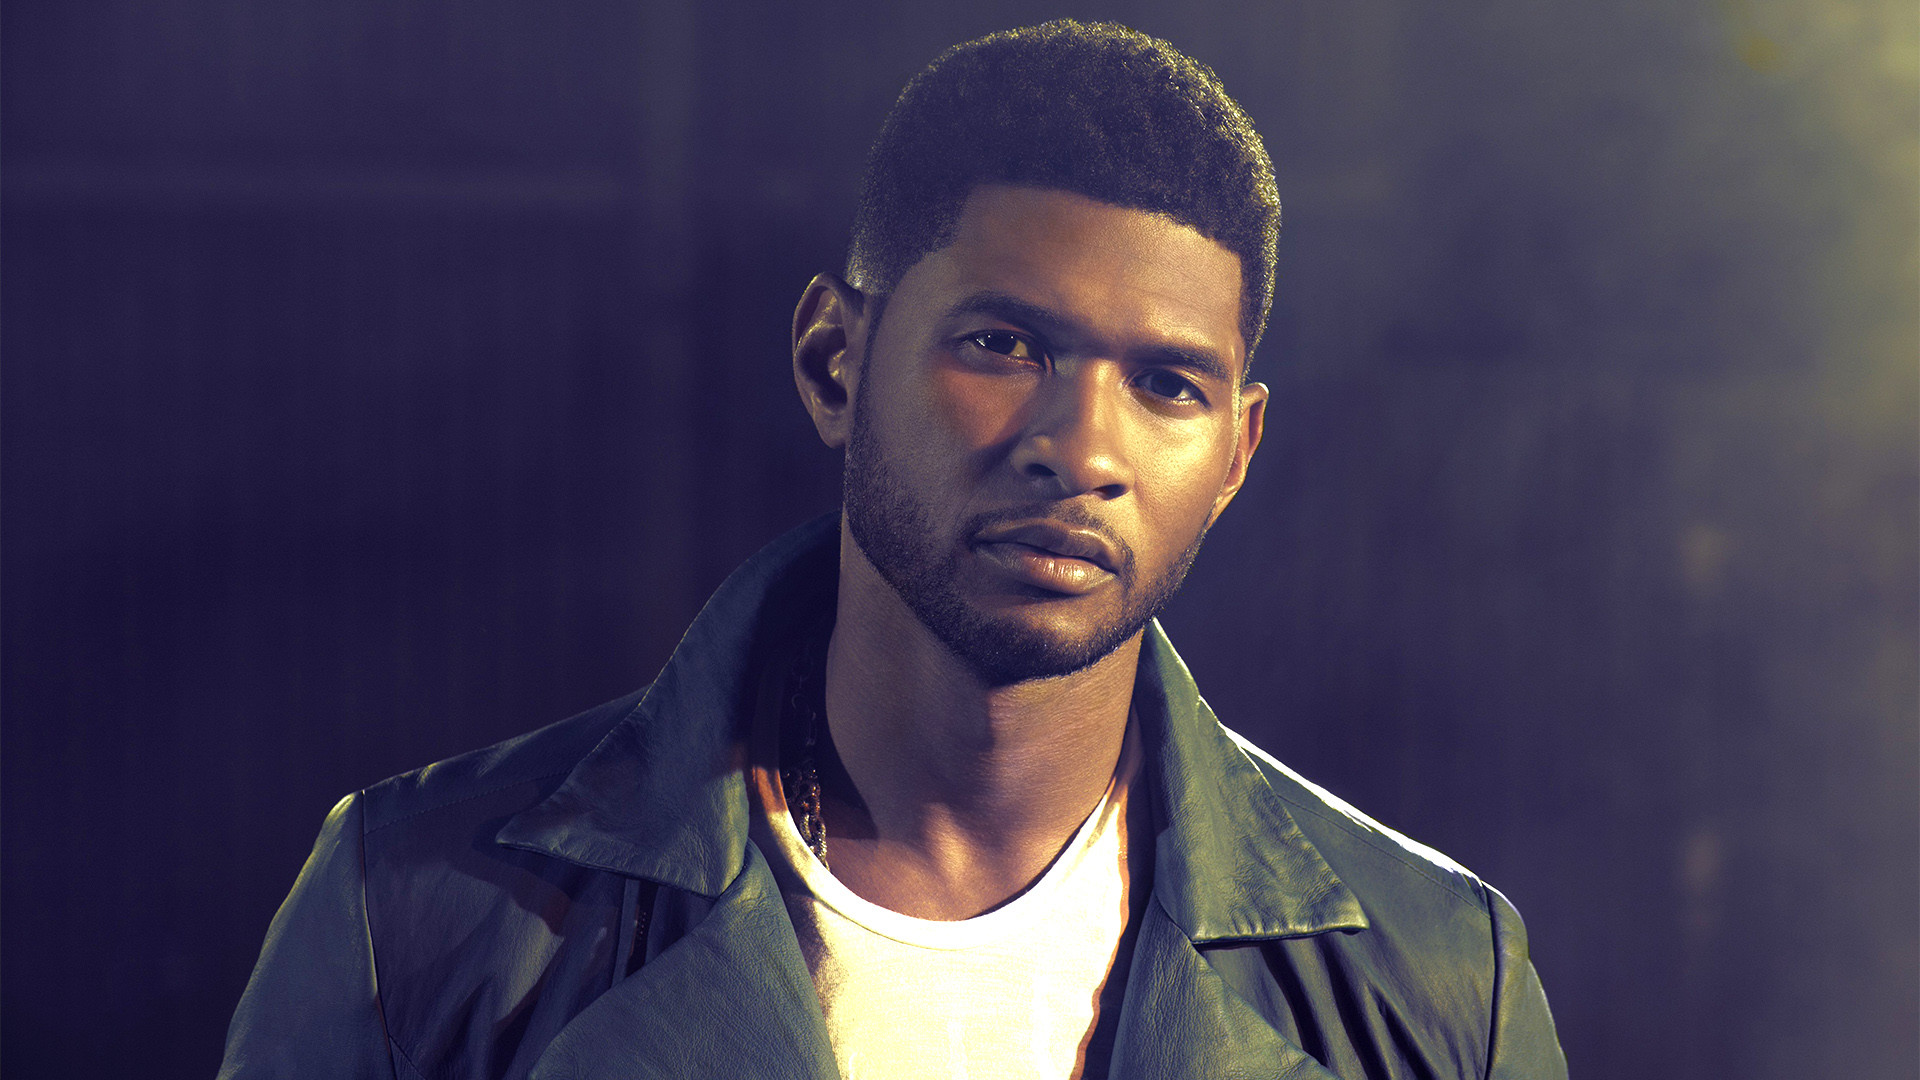 1920x1080 Usher Wallpaper